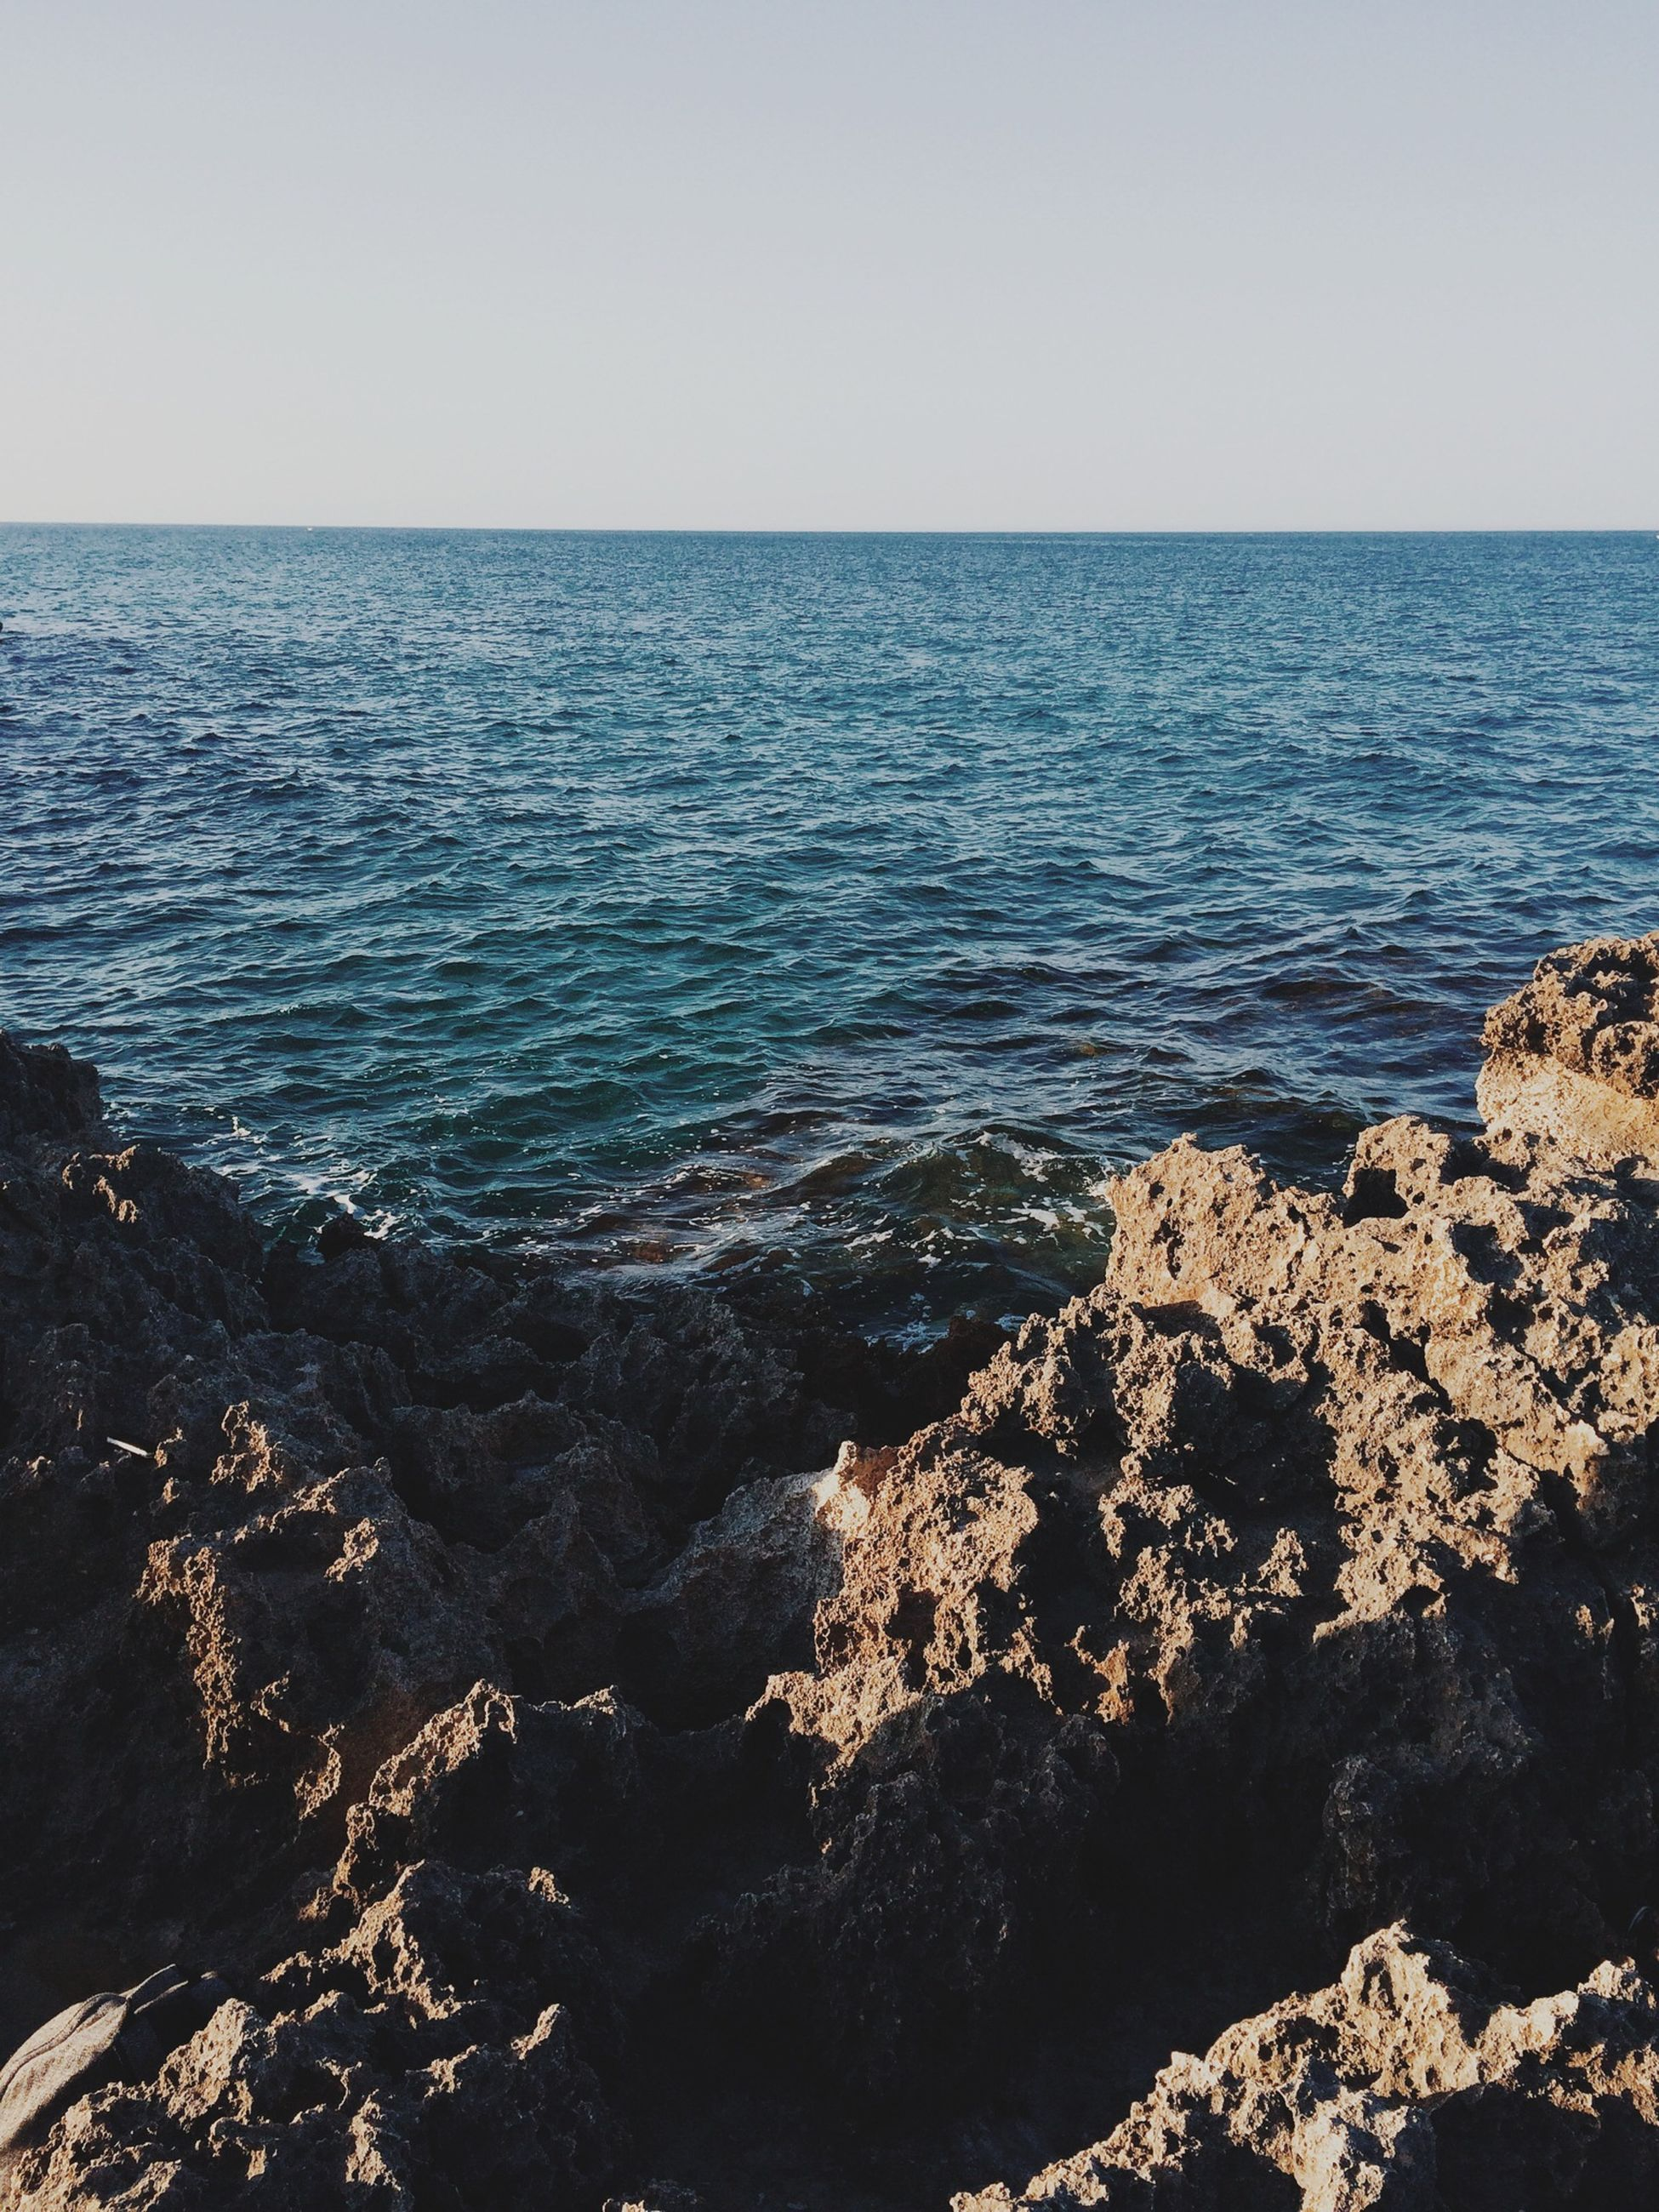 sea, water, horizon over water, scenics, tranquil scene, clear sky, beauty in nature, tranquility, nature, seascape, idyllic, rippled, blue, copy space, sky, outdoors, high angle view, no people, waterfront, day